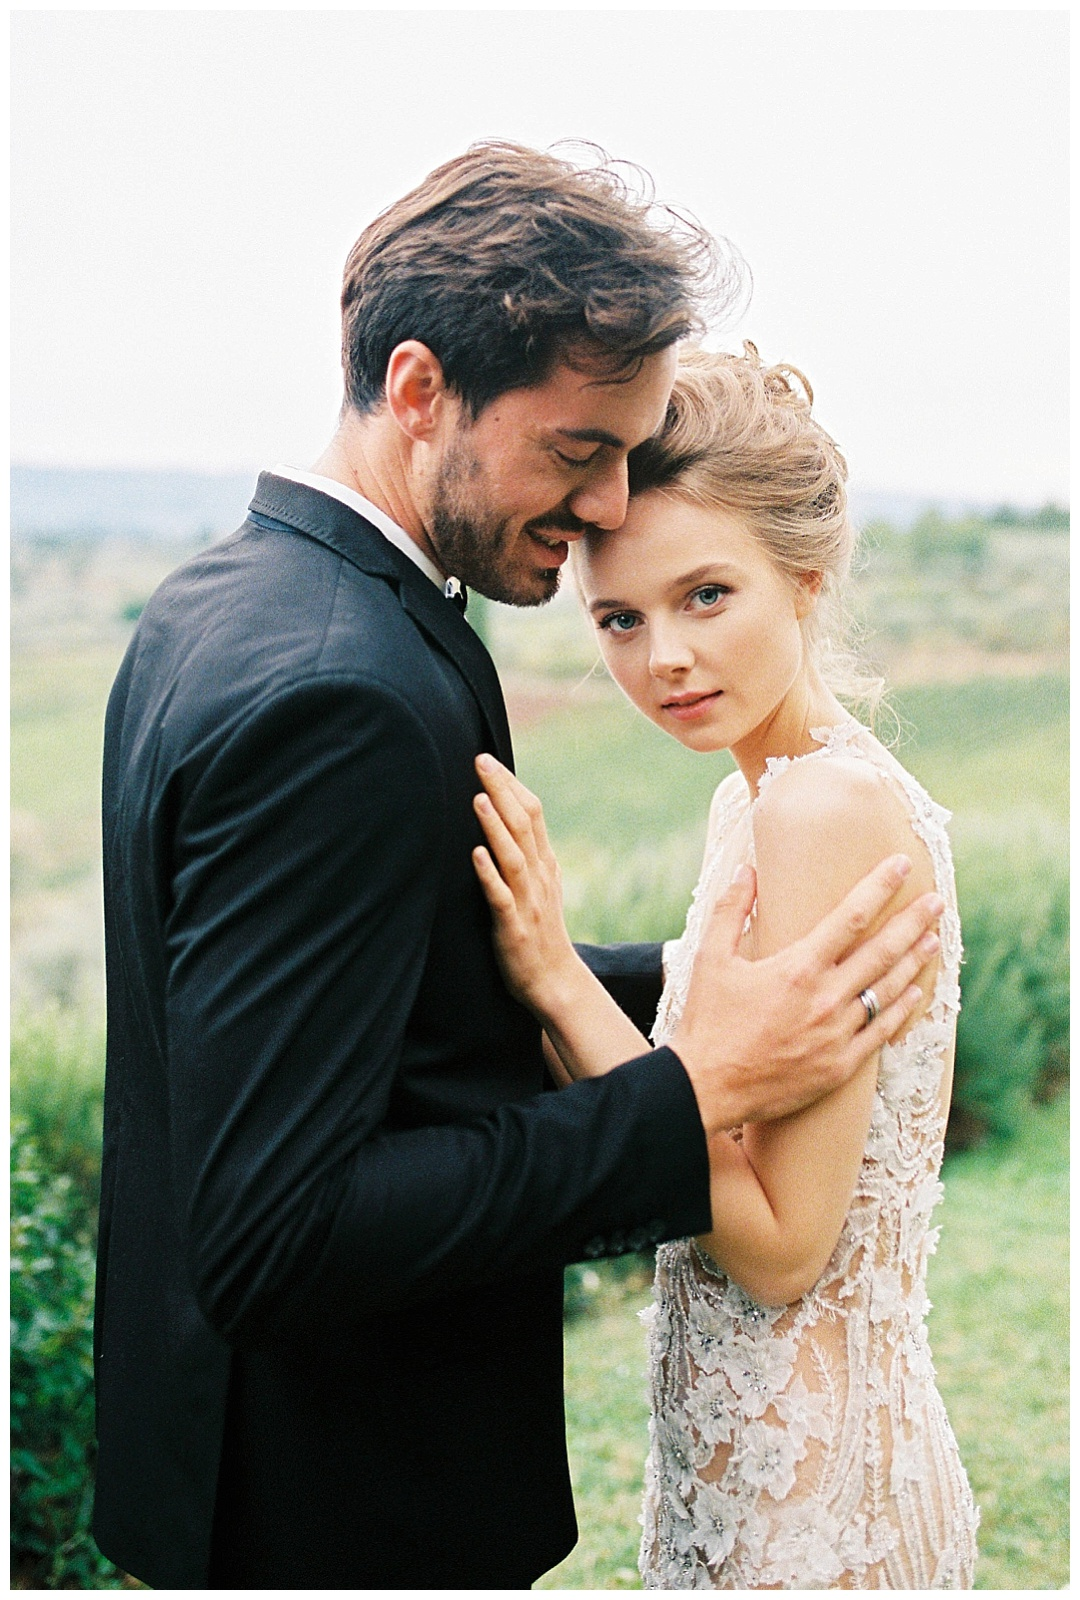 We_Can _Be_Heroes_alternative_wedding_photographer_Tuscany_wedding_film_0013